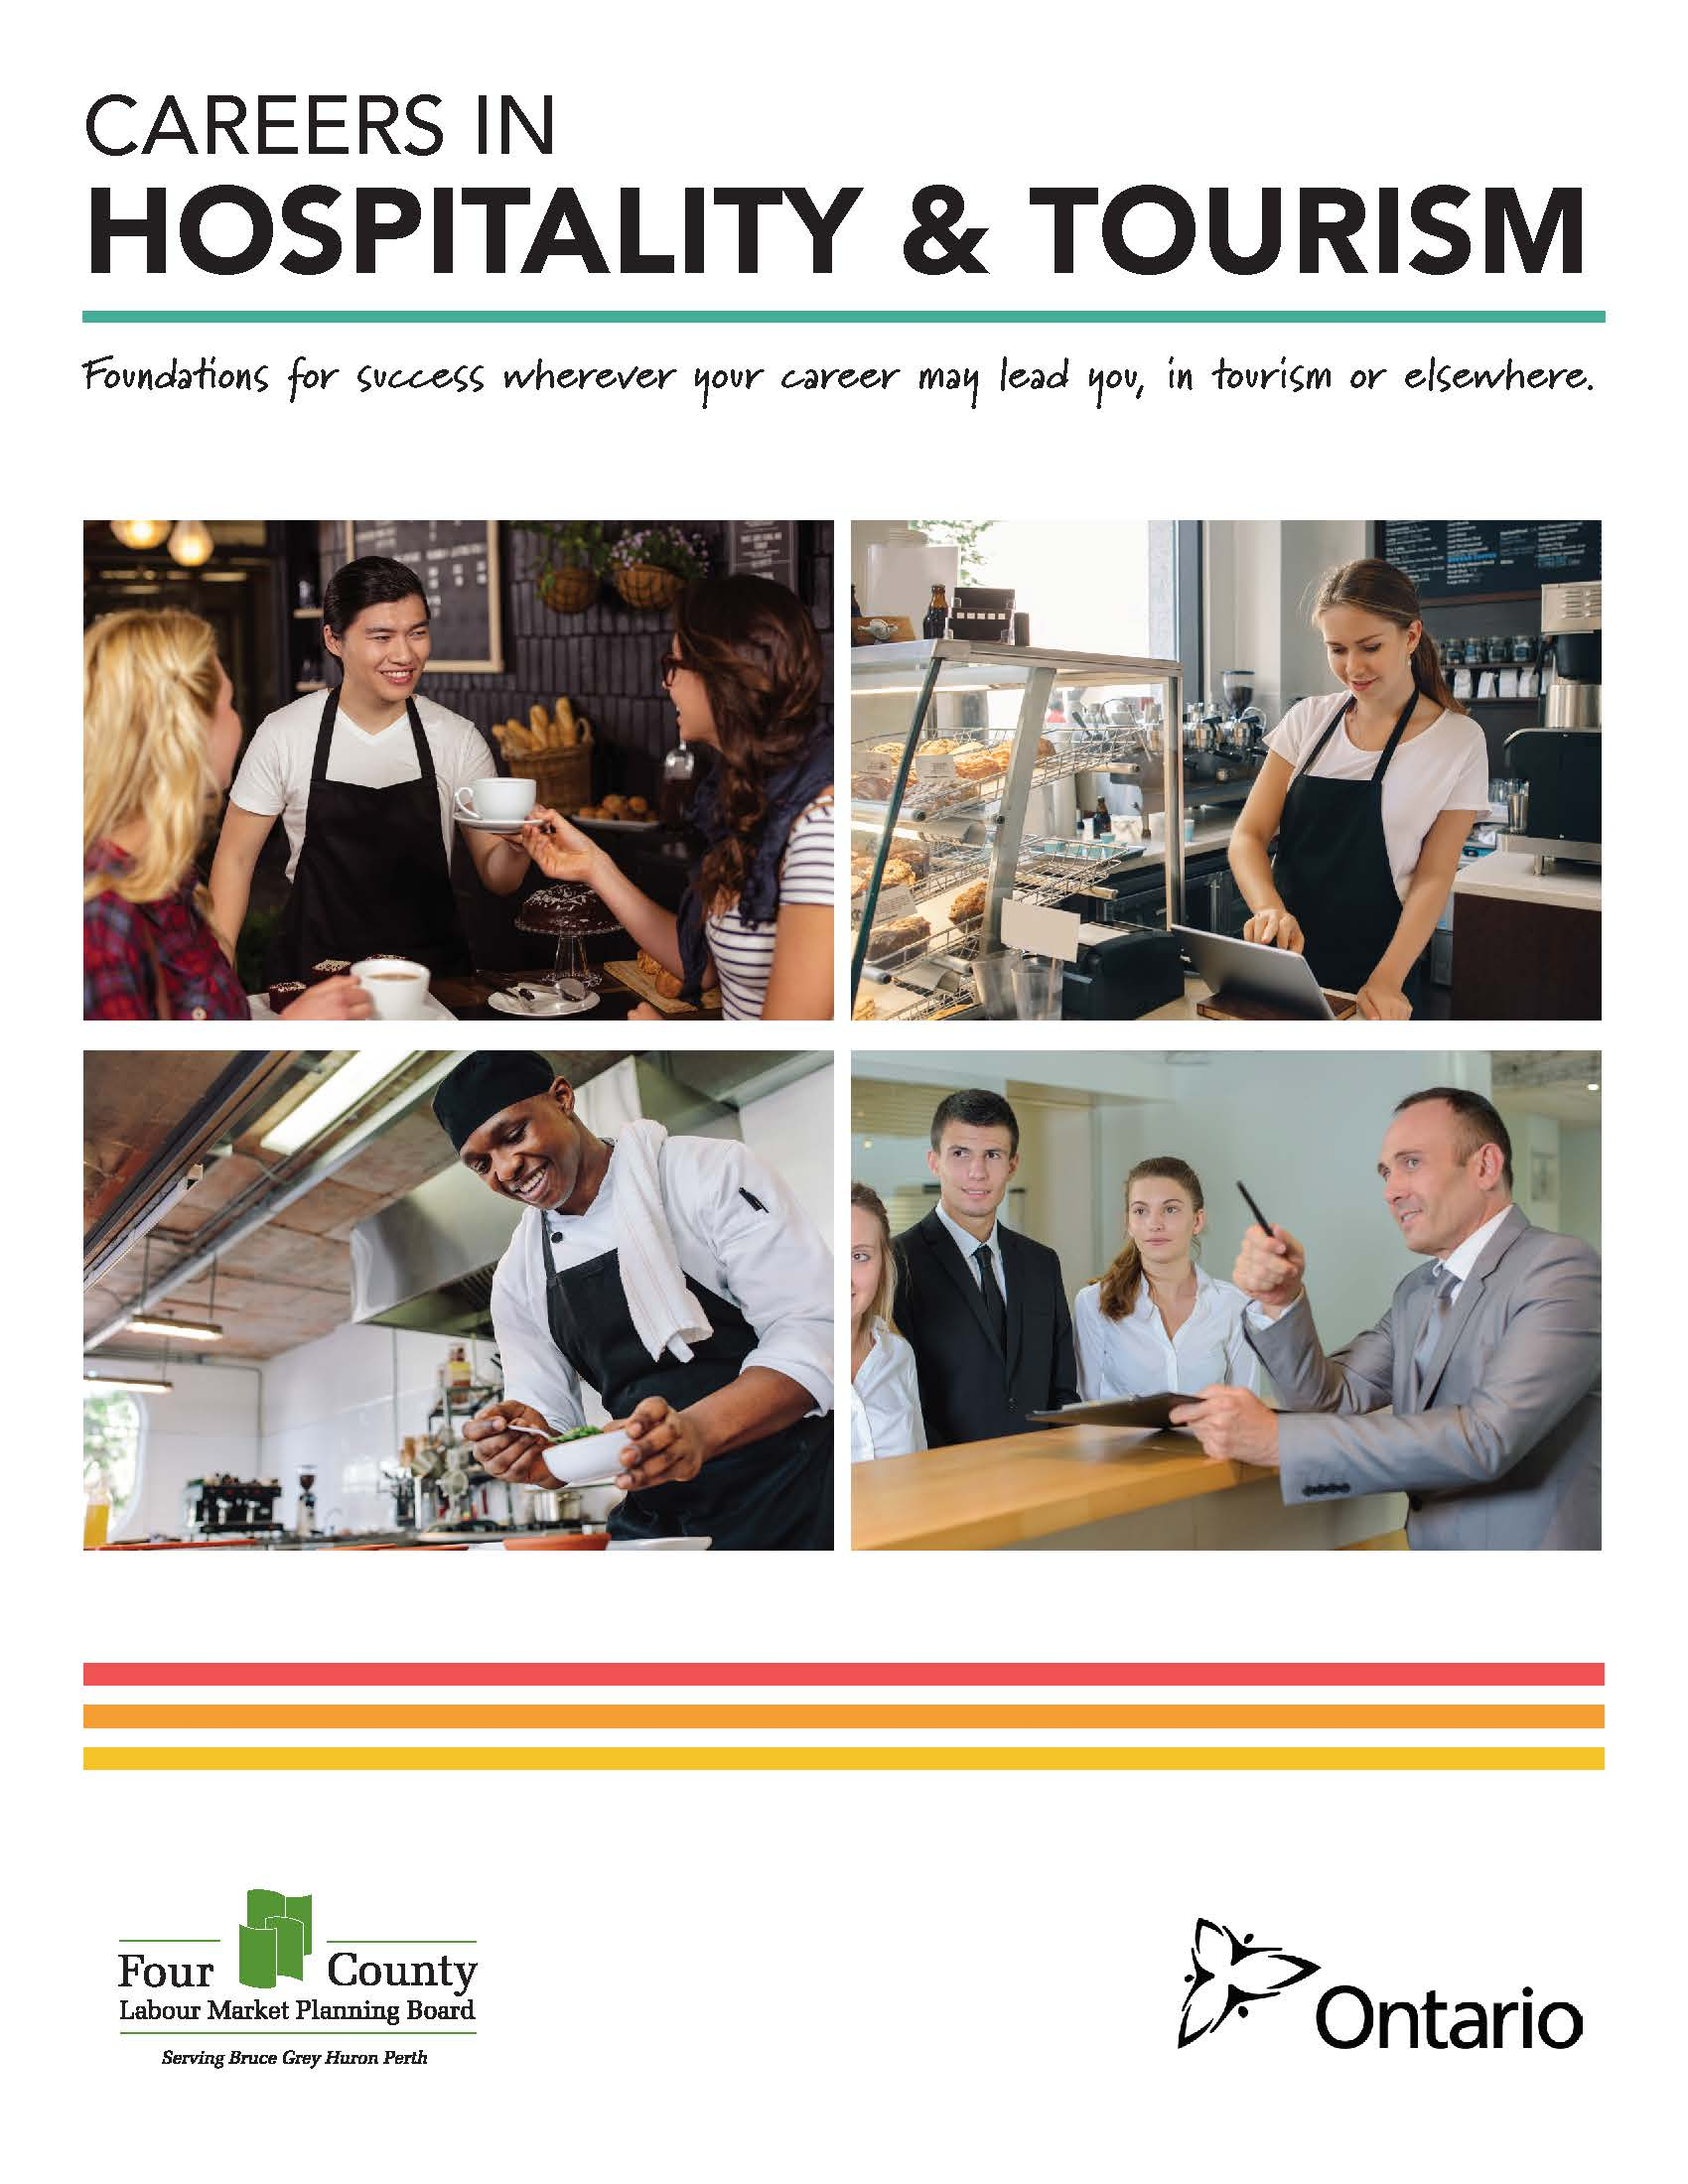 Career Map - Hospitality and Tourism - Four County Labour Market Planning Board